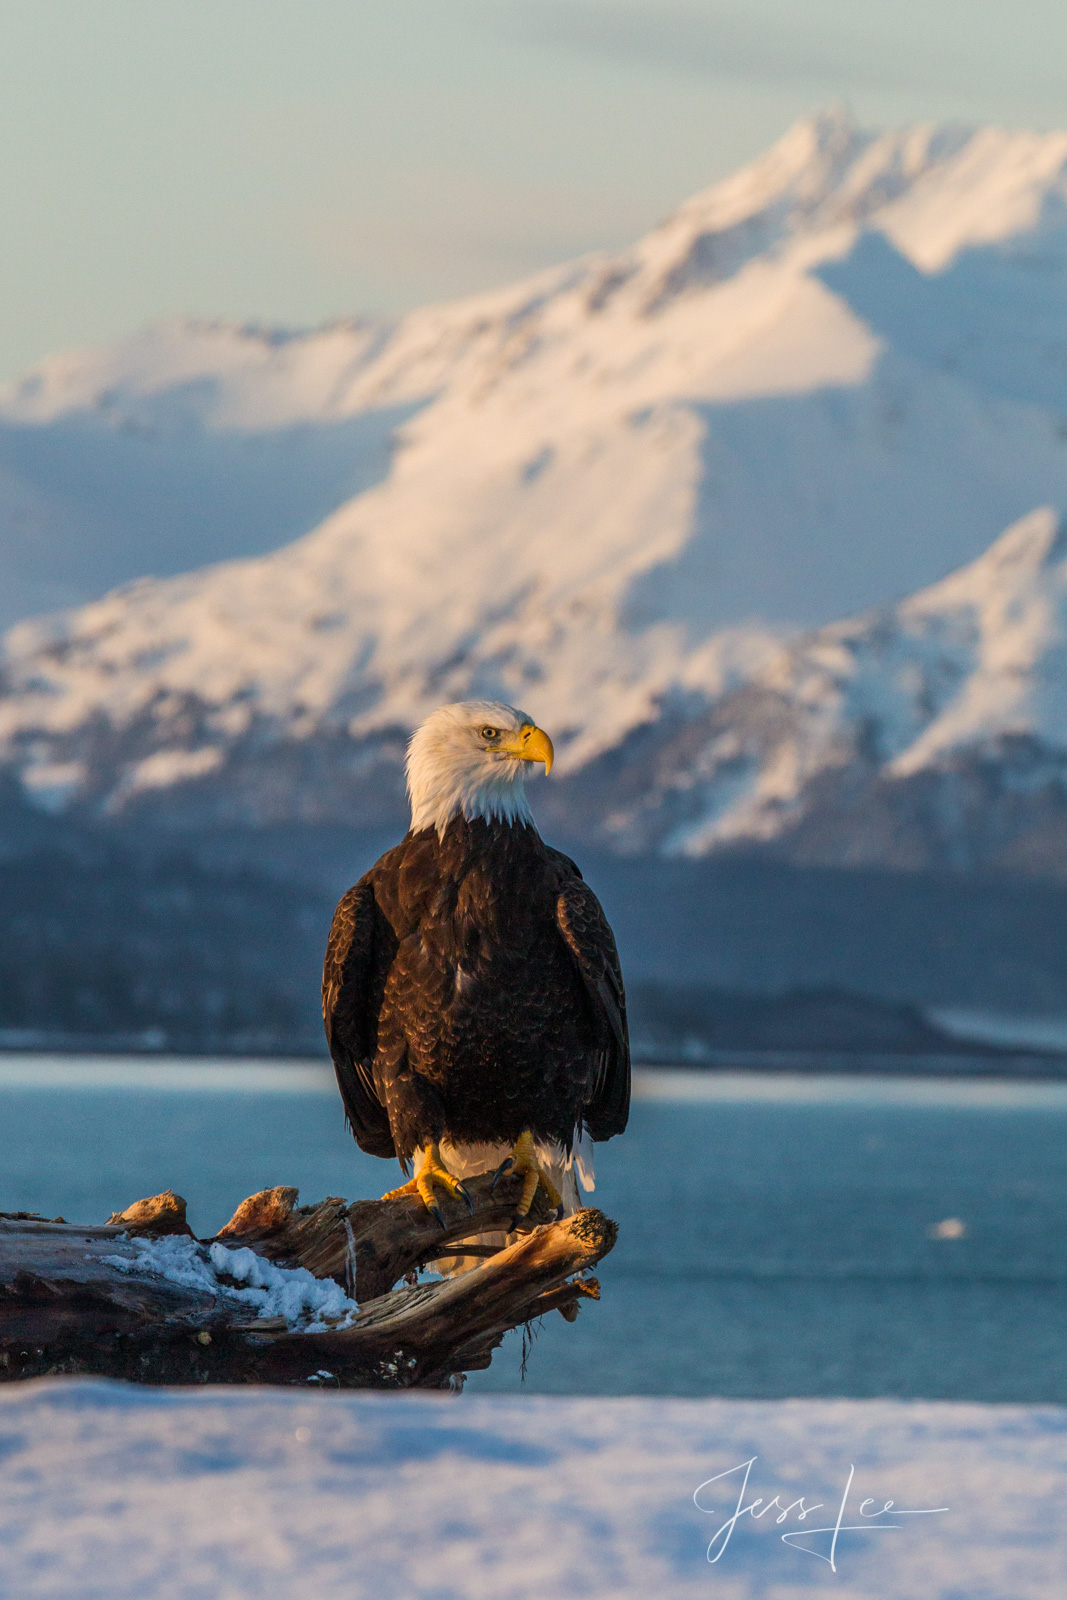 Bring home the power and beauty of the amazing fine art American Bald Eagle photograph Eagle Mountain by Jess Lee from his Wildlife...